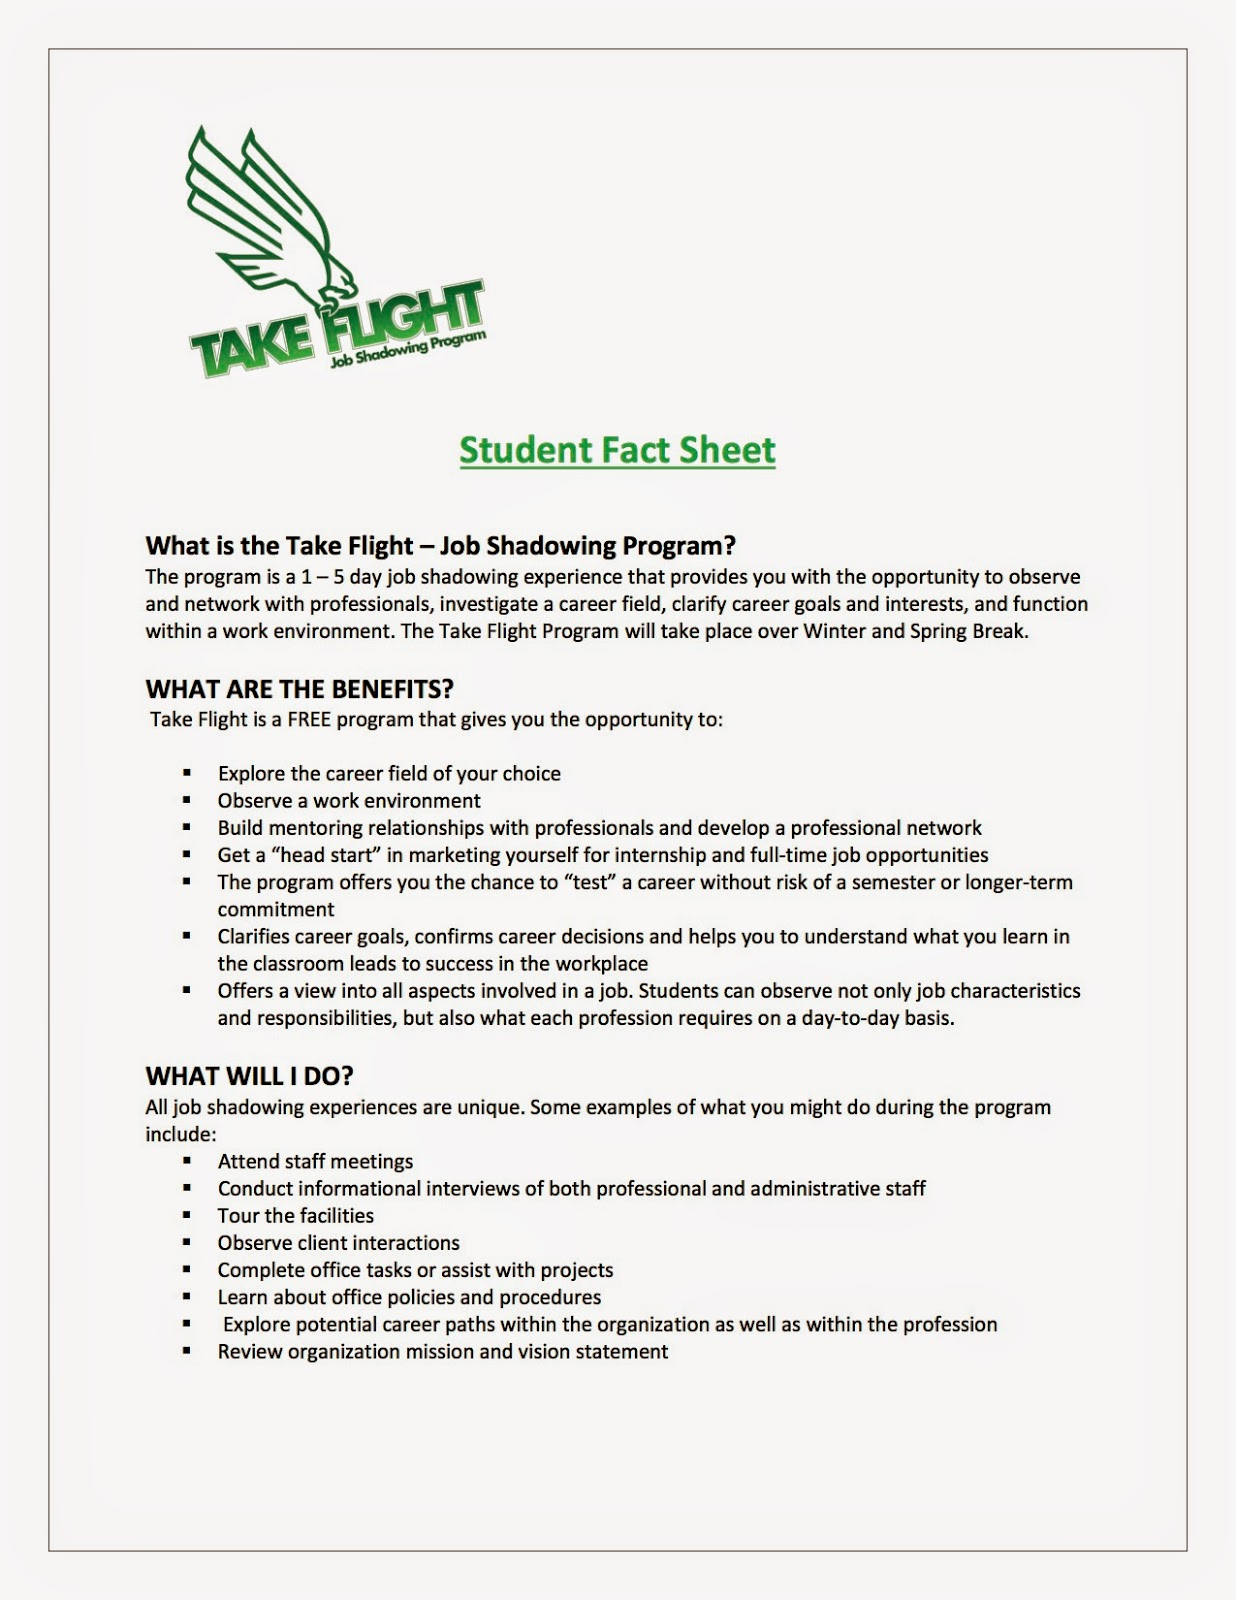 anthropology student association at university of north texas, Powerpoint templates